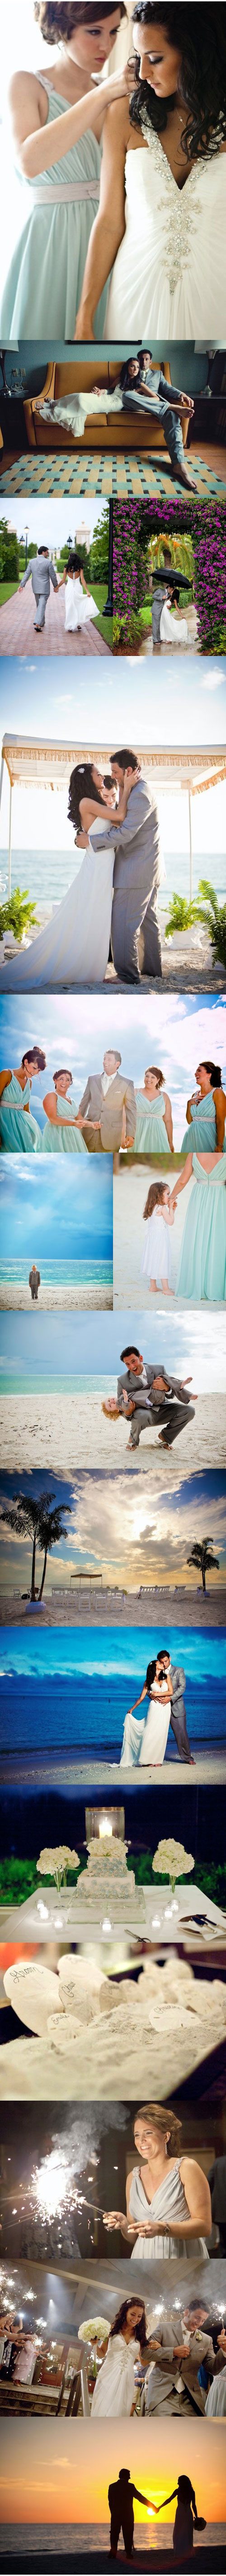 Wedding Blog Destination Inspiration